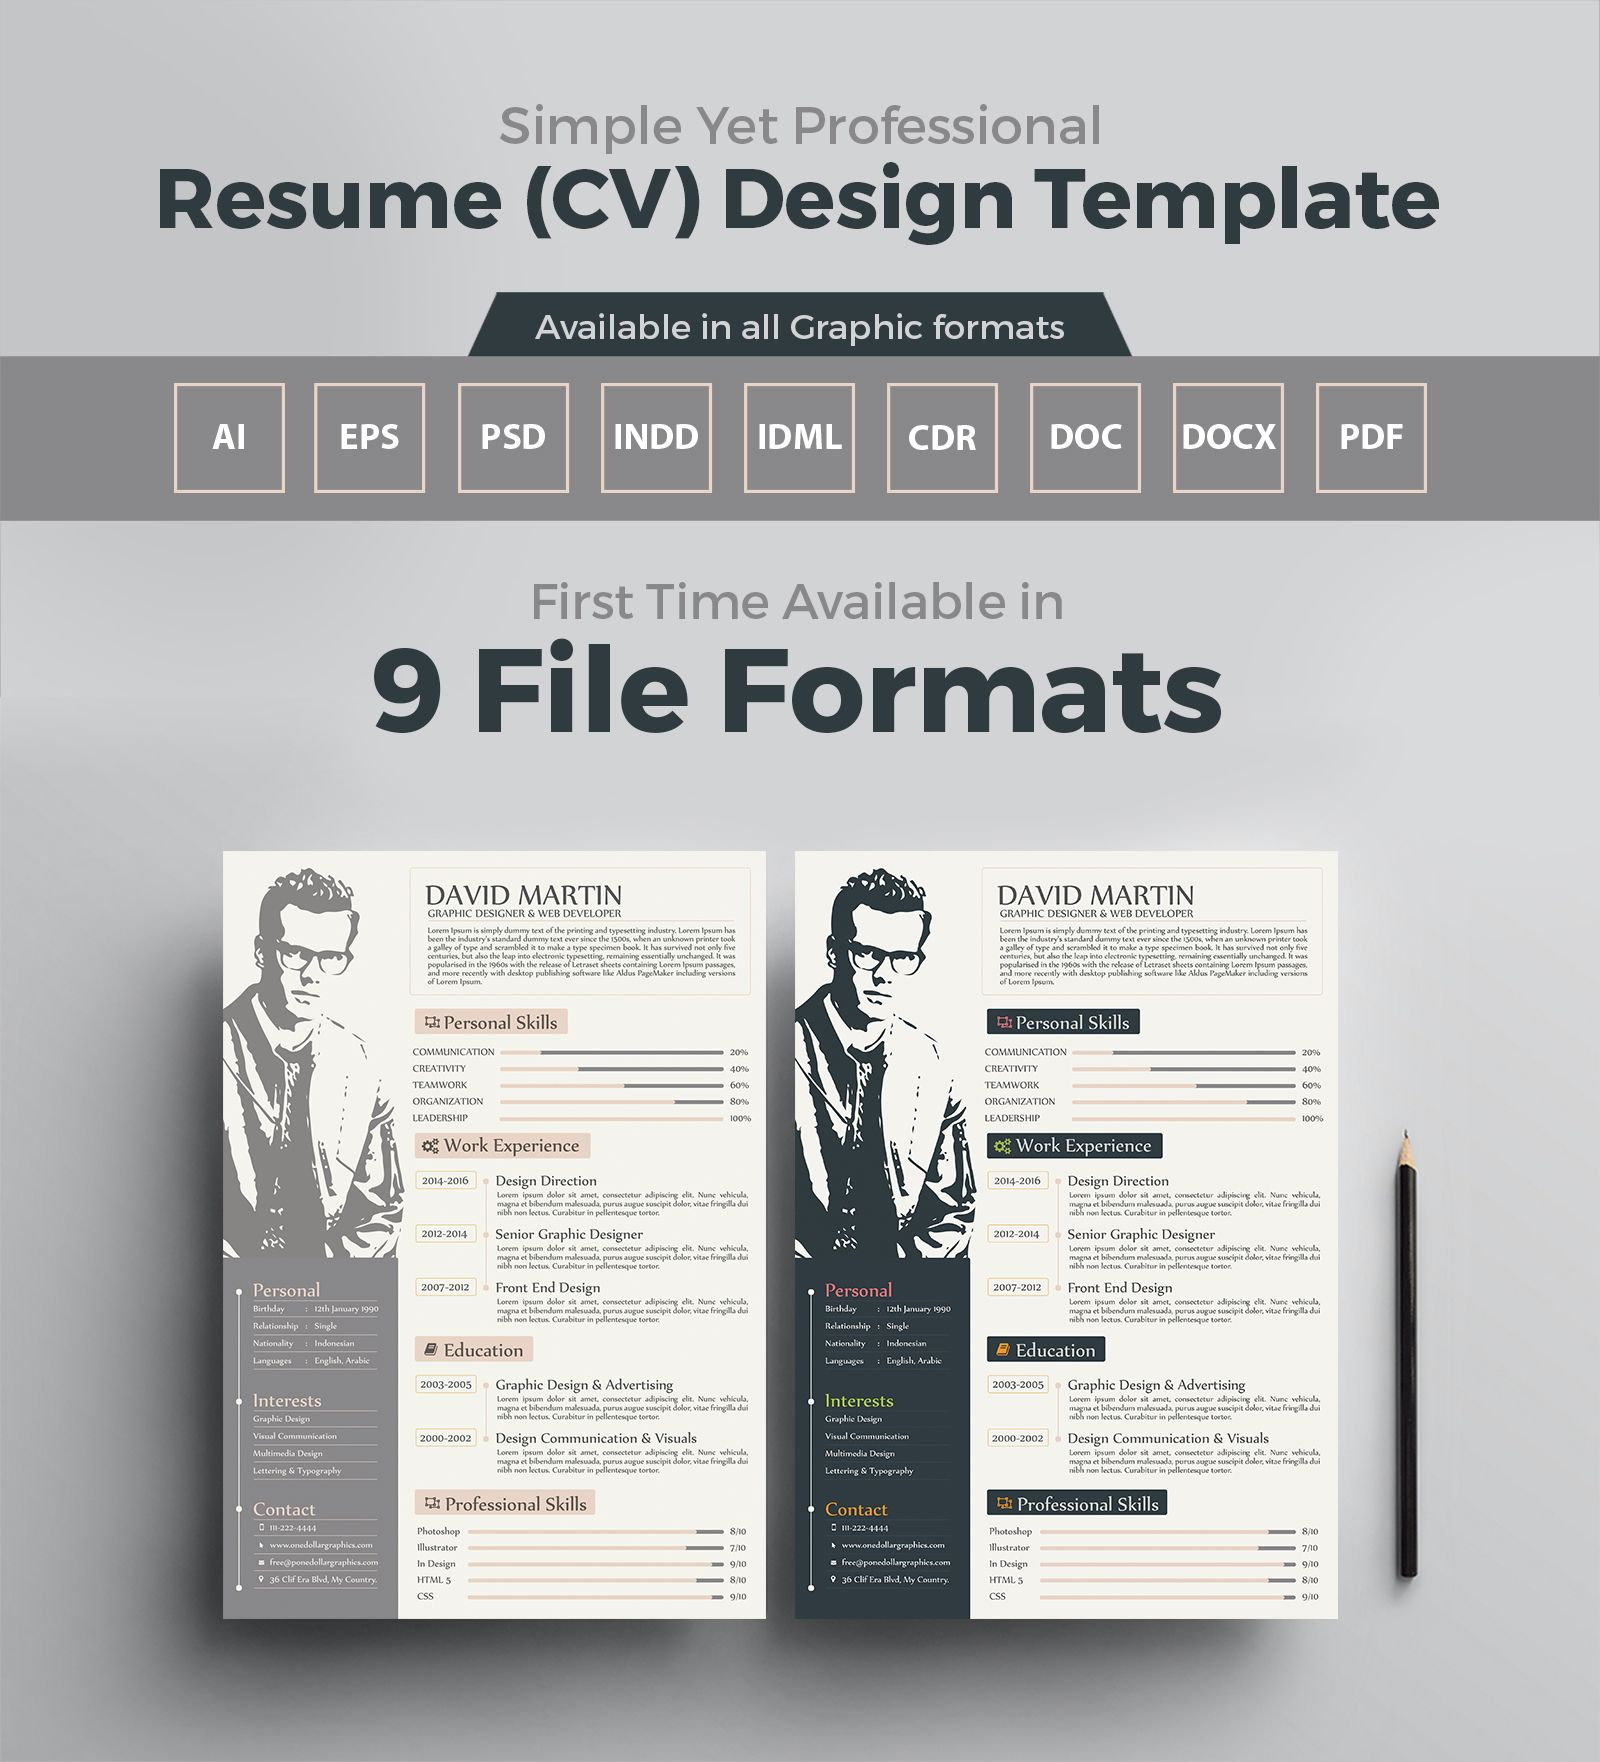 Simple Yet Professional Resume Cv Design Template 3 Brochures